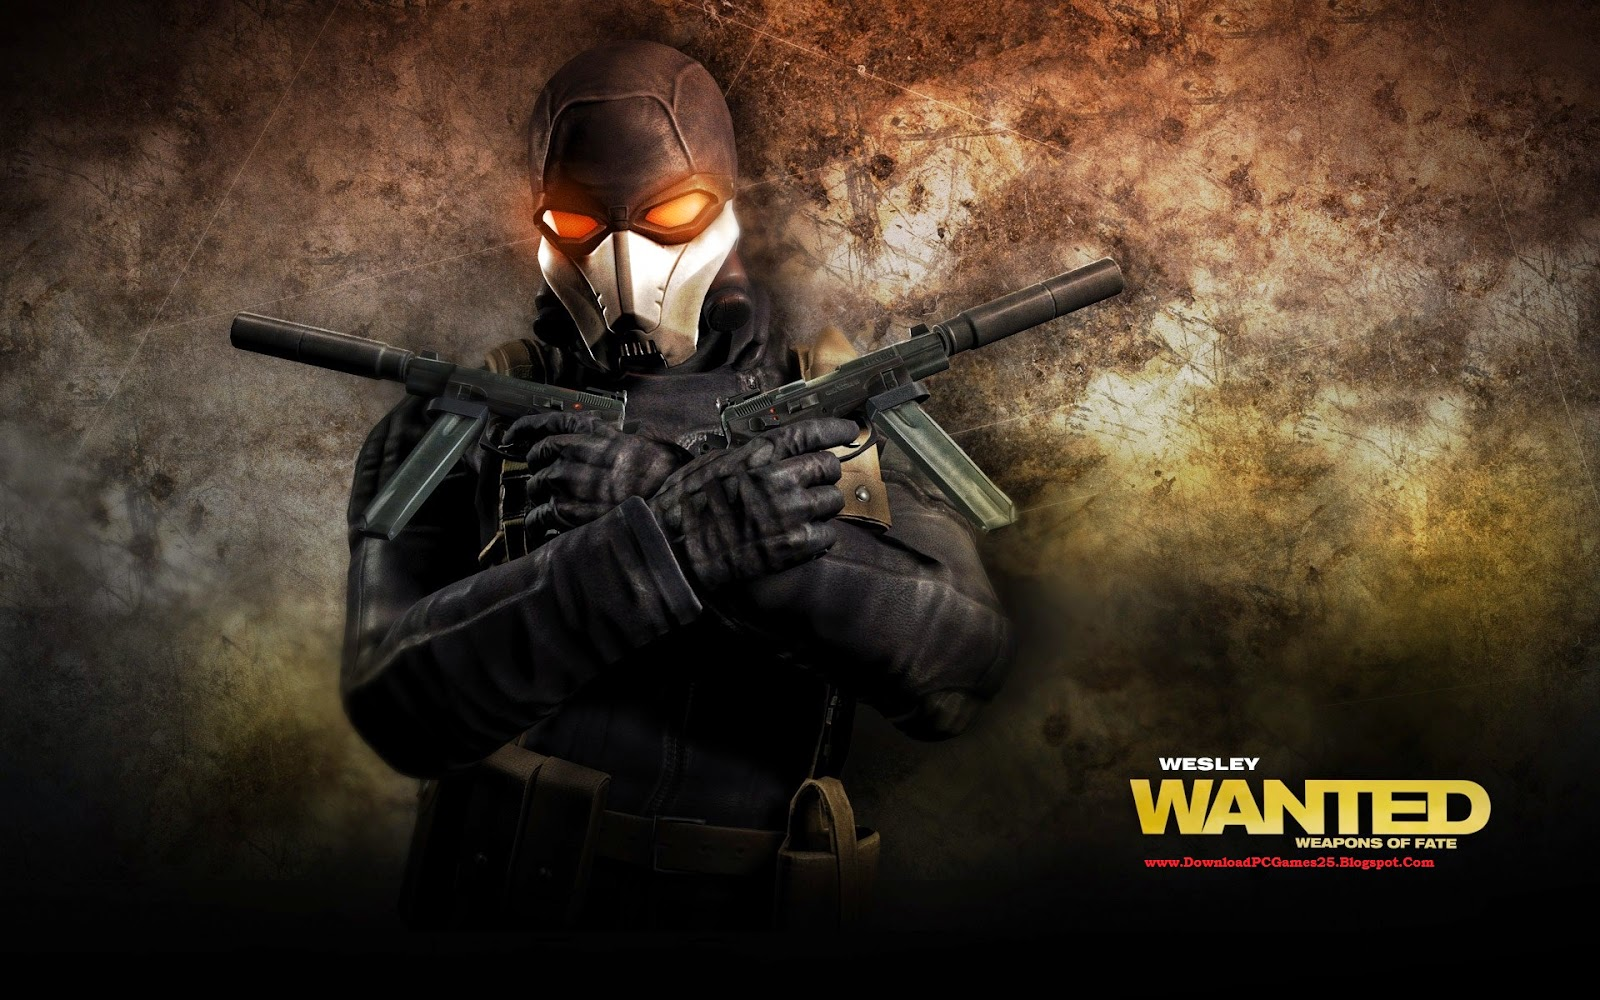 Wanted Weapons of Fate PC